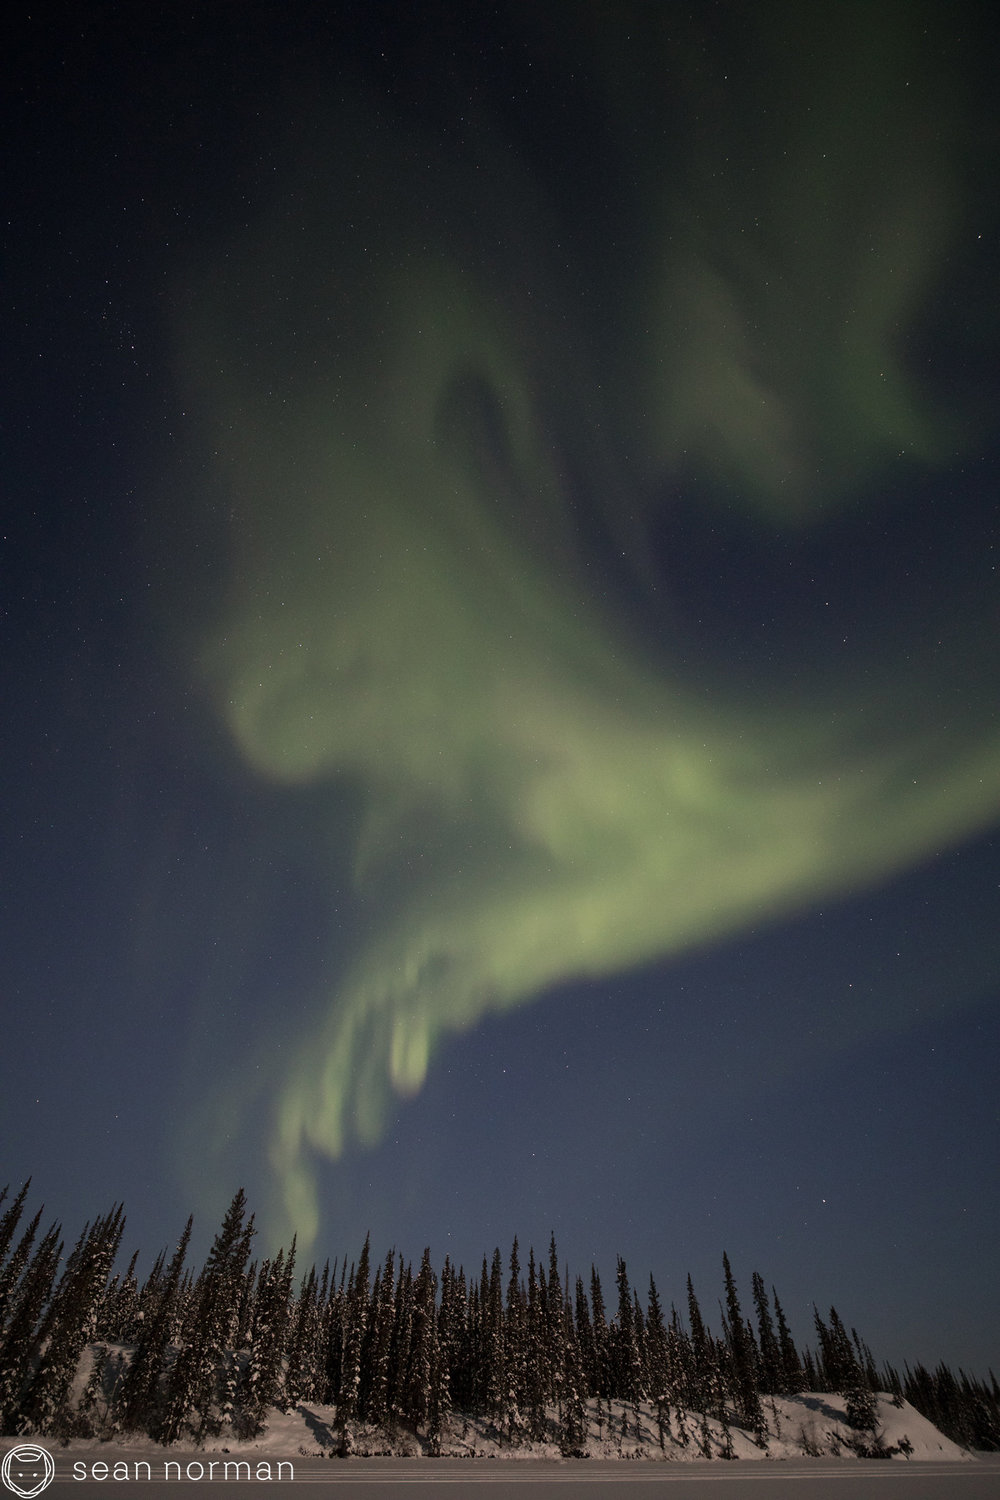 Sean Norman Yellowknife Aurora Chaser - Northern Lights Photo Blog - 2.jpg